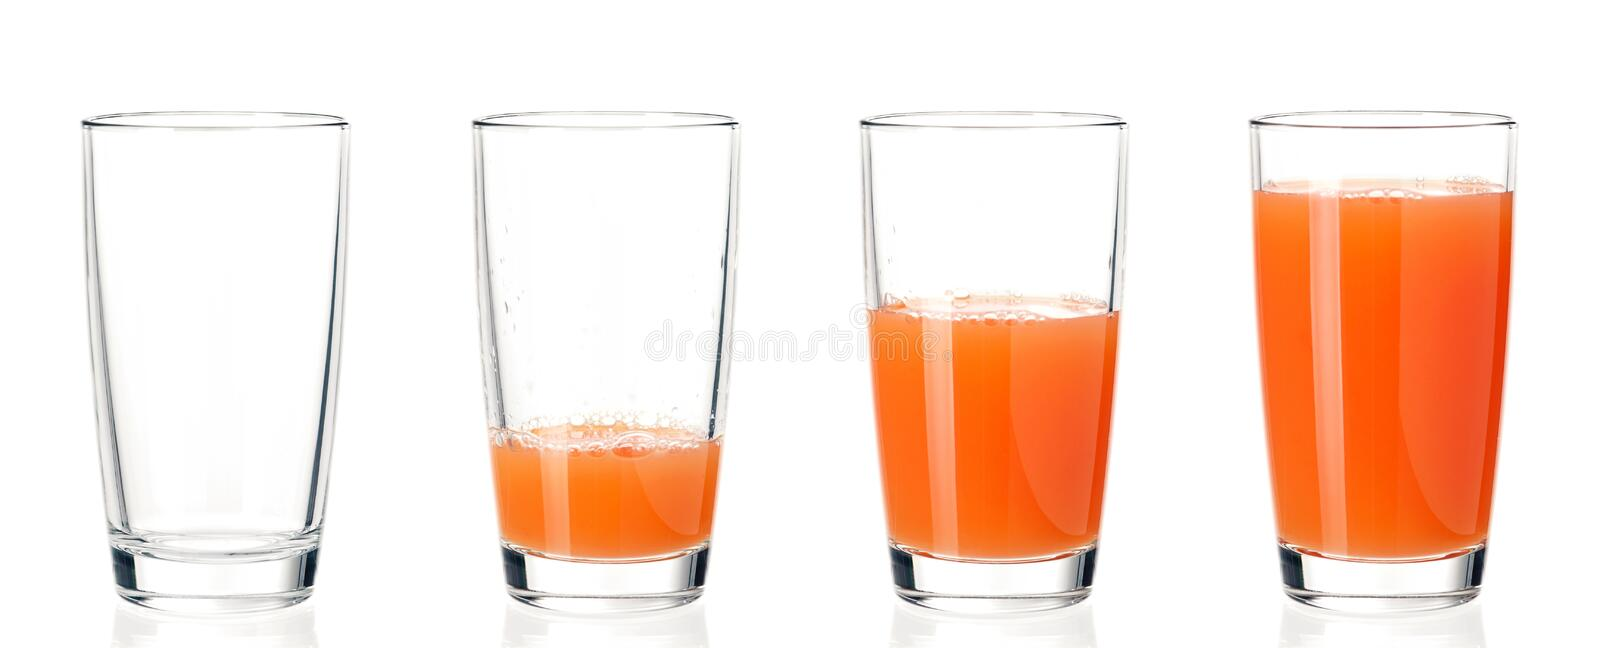 Set of glasses juice. Set of four glasses with fresh grapefruit juice, isolated on white background. Studio shot royalty free stock images